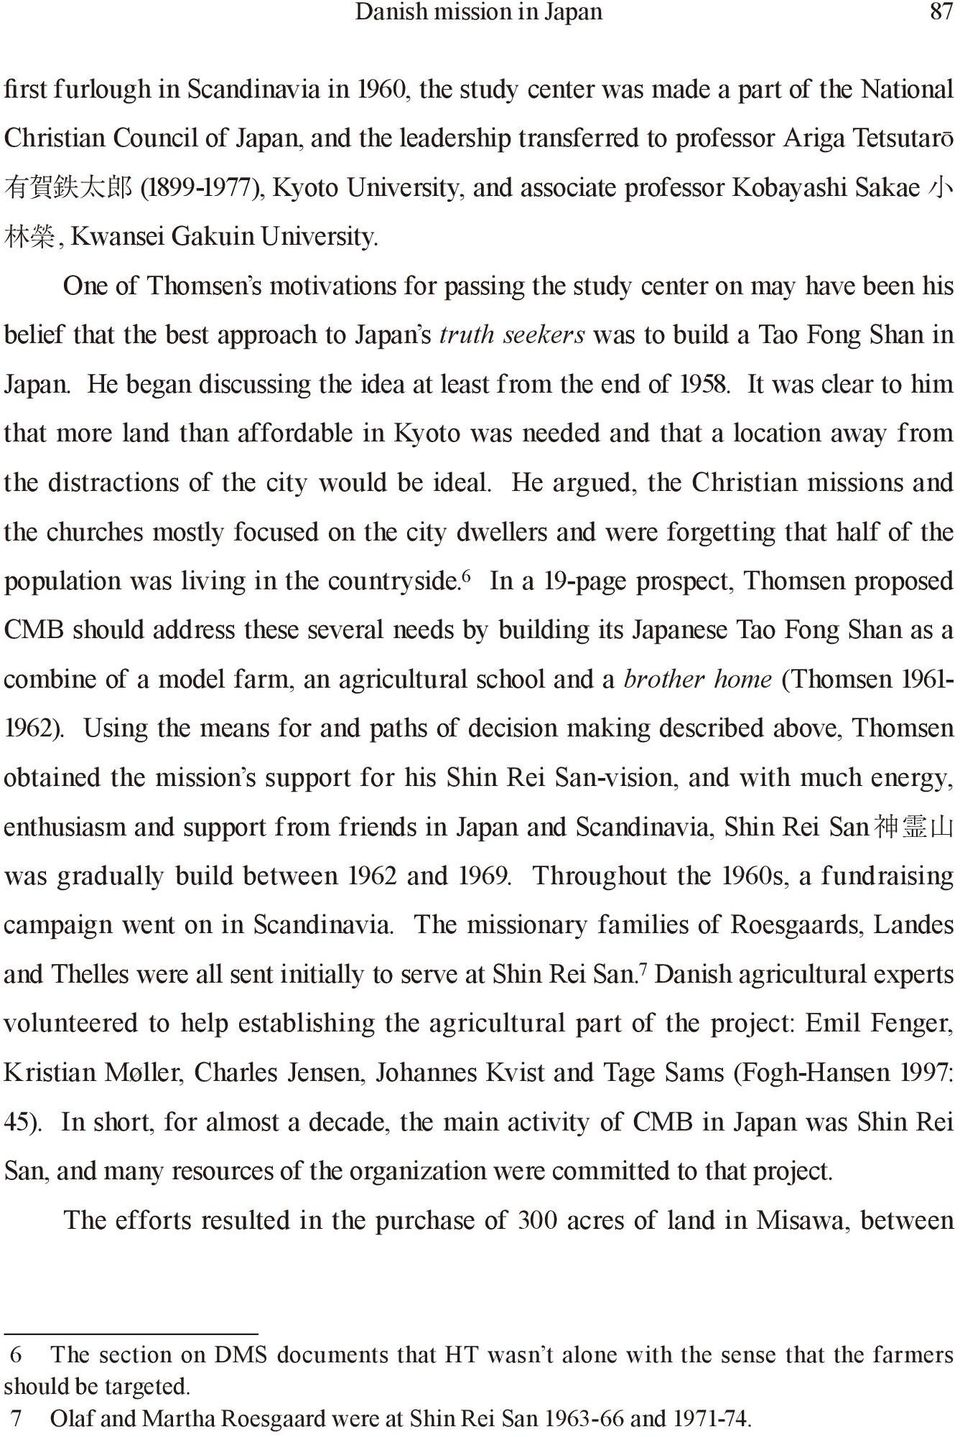 One of Thomsen s motivations for passing the study center on may have been his belief that the best approach to Japan s truth seekers was to build a Tao Fong Shan in Japan.